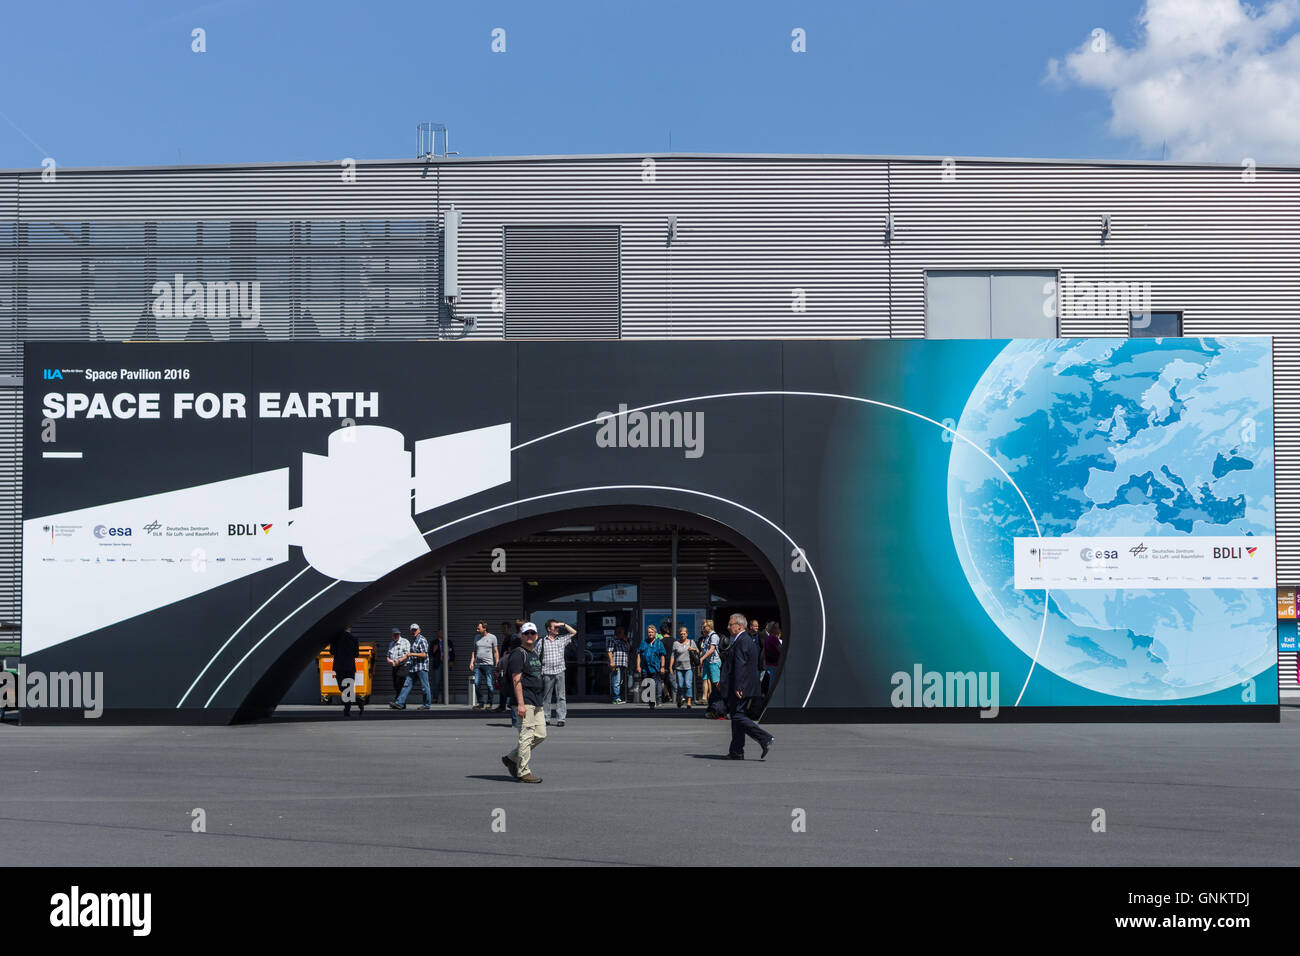 BERLIN, GERMANY - JUNE 03, 2016: Space Pavilion. Exhibition ILA Berlin Air Show 2016 - Stock Image